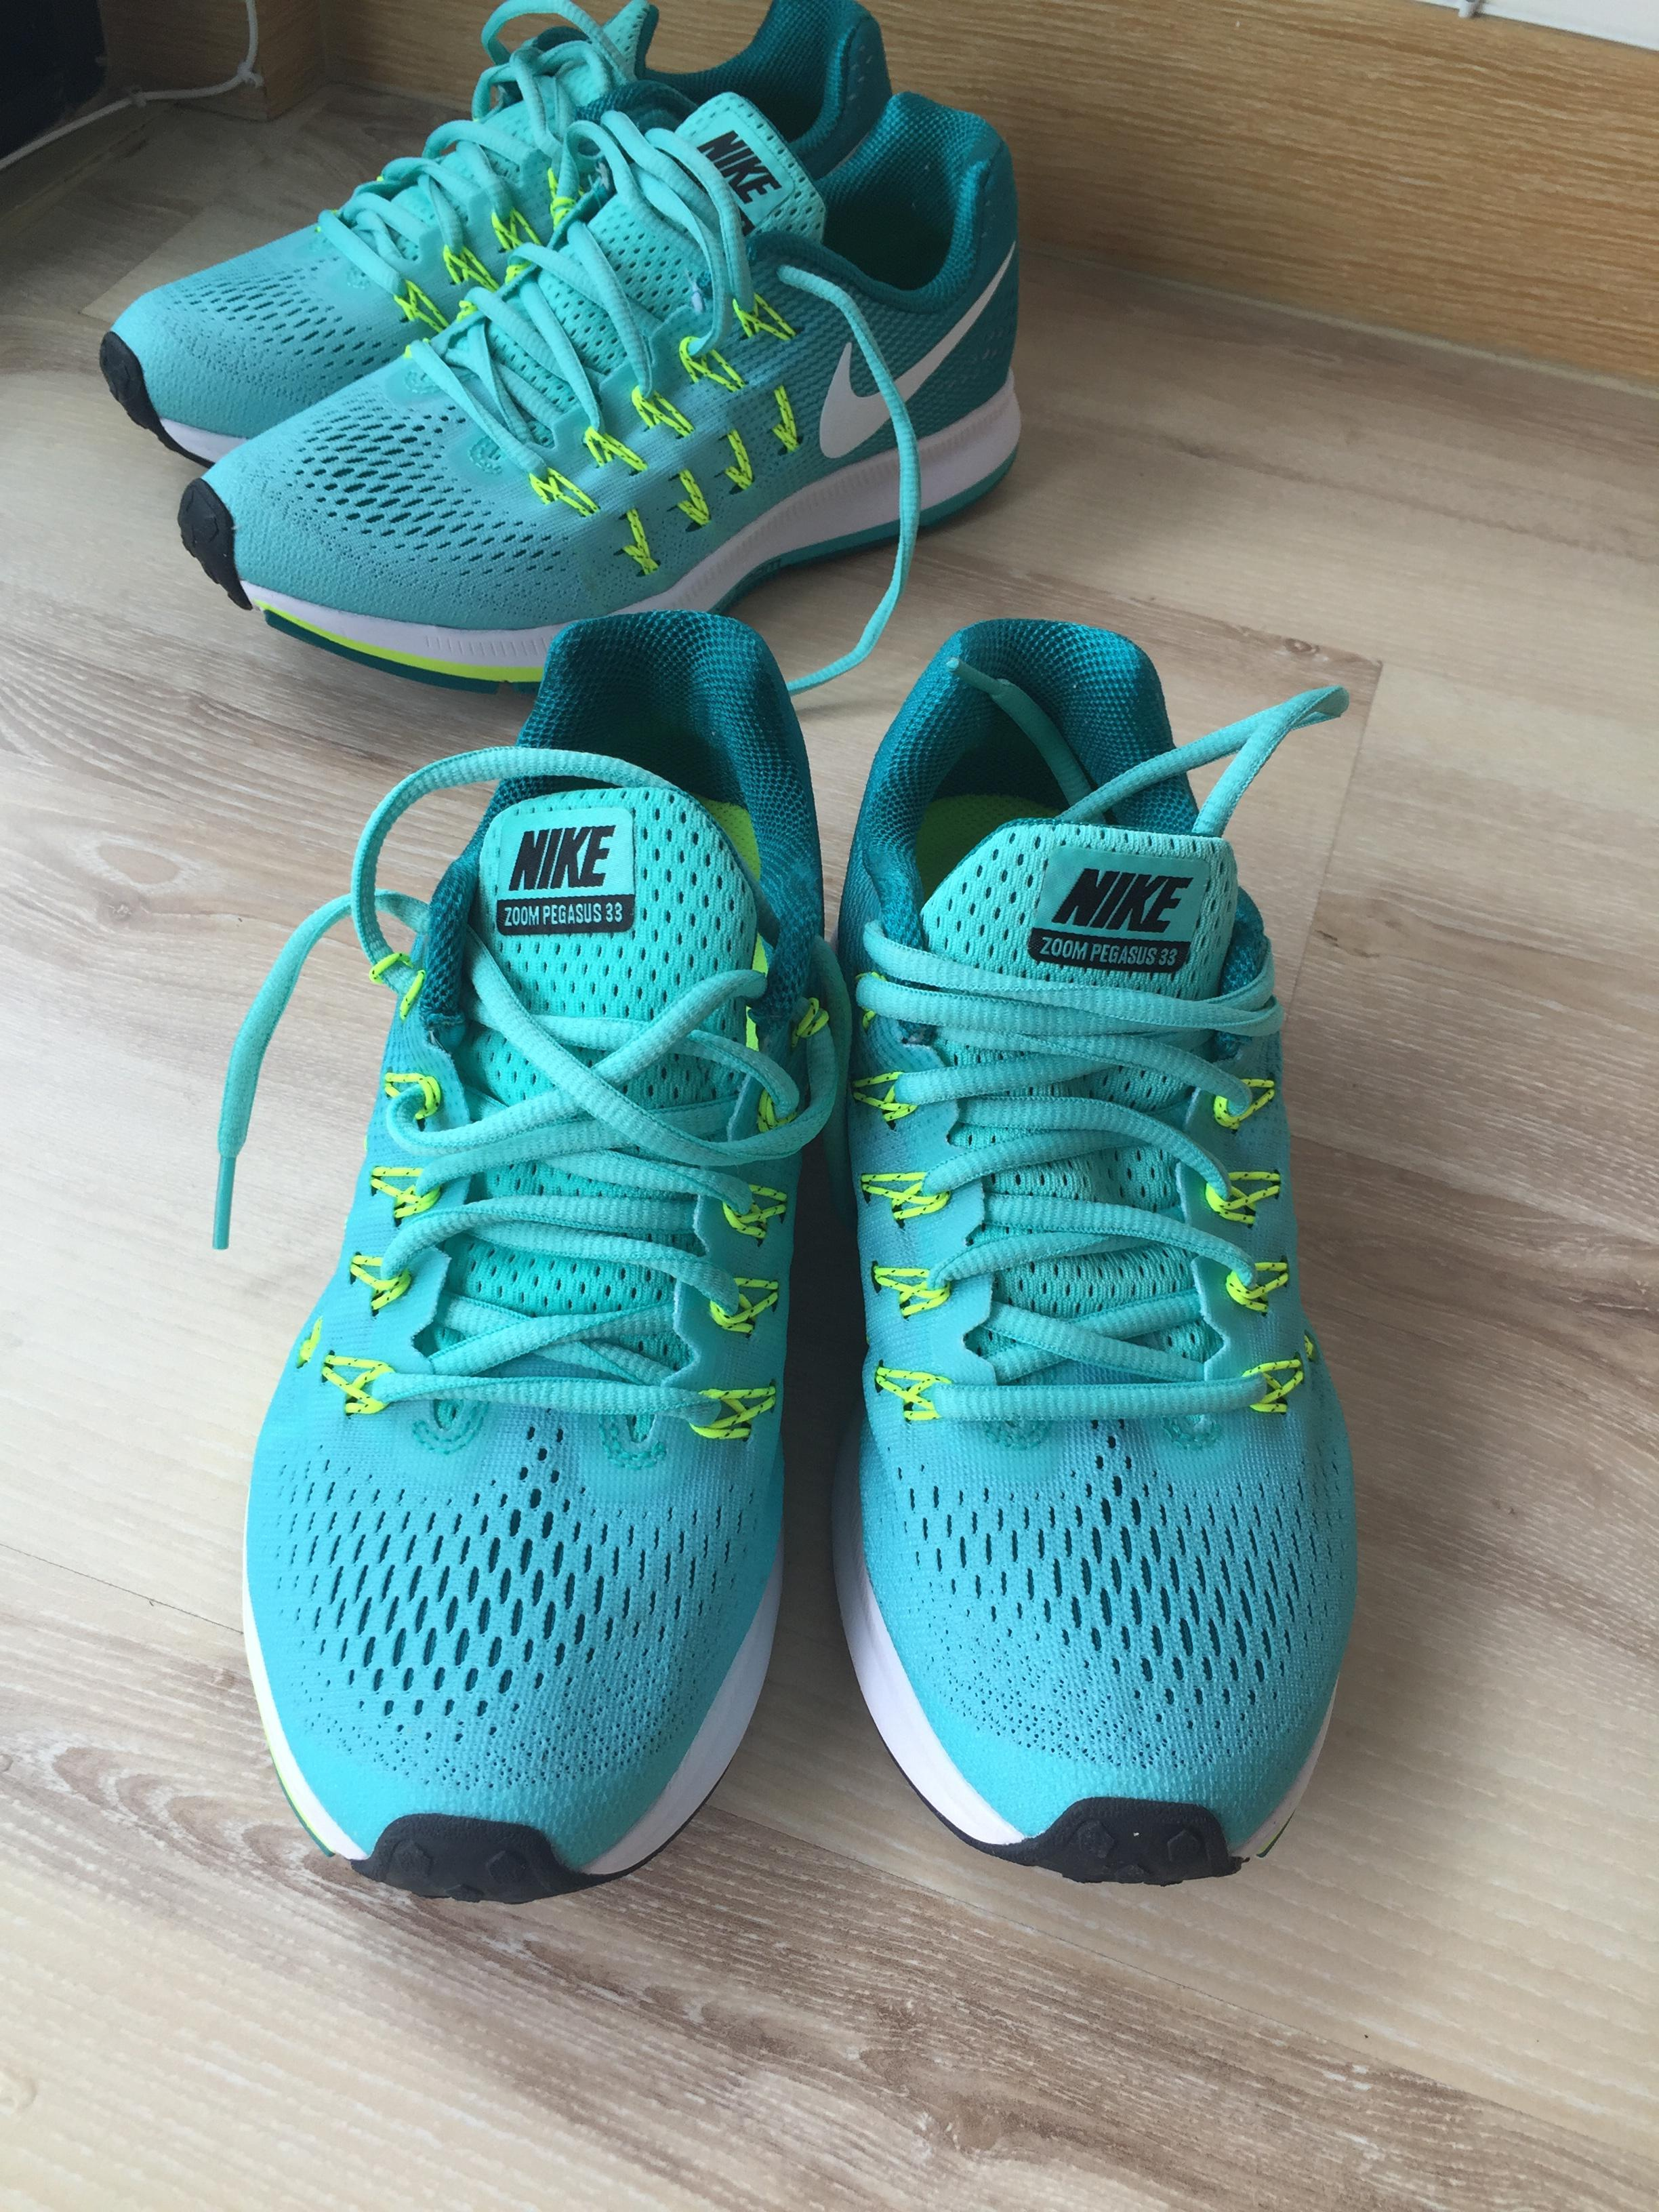 the latest 395ed 25dd2 Nike Running Shoes Air Zoom Pegasus 33, Size US 6.5 - Worn Once Only!